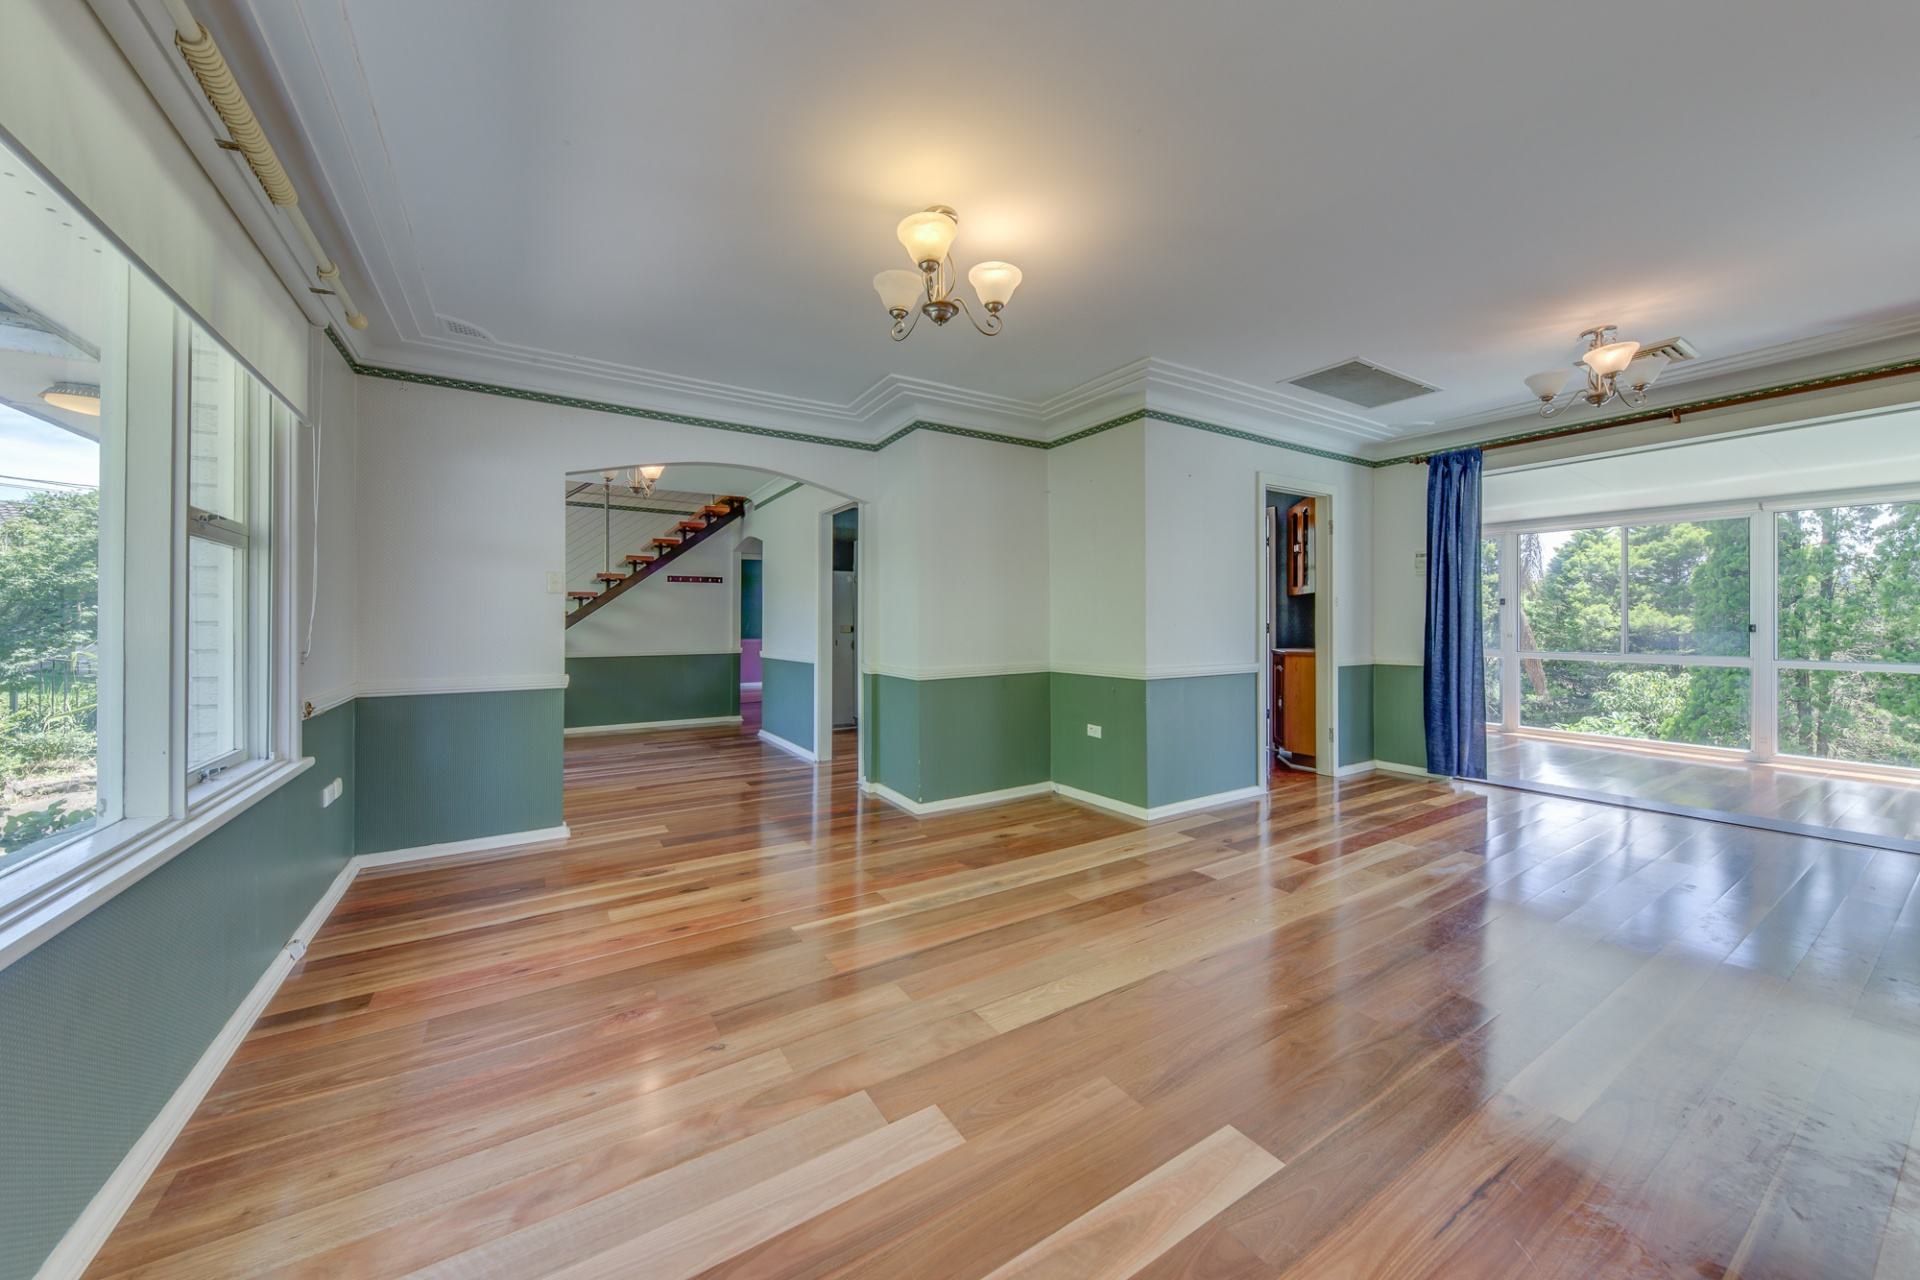 4 Rooms, House, Leased, Garthowen Crescent, 2 Bathrooms, Listing ID 1269, Castle Hill, NSW, Australia,